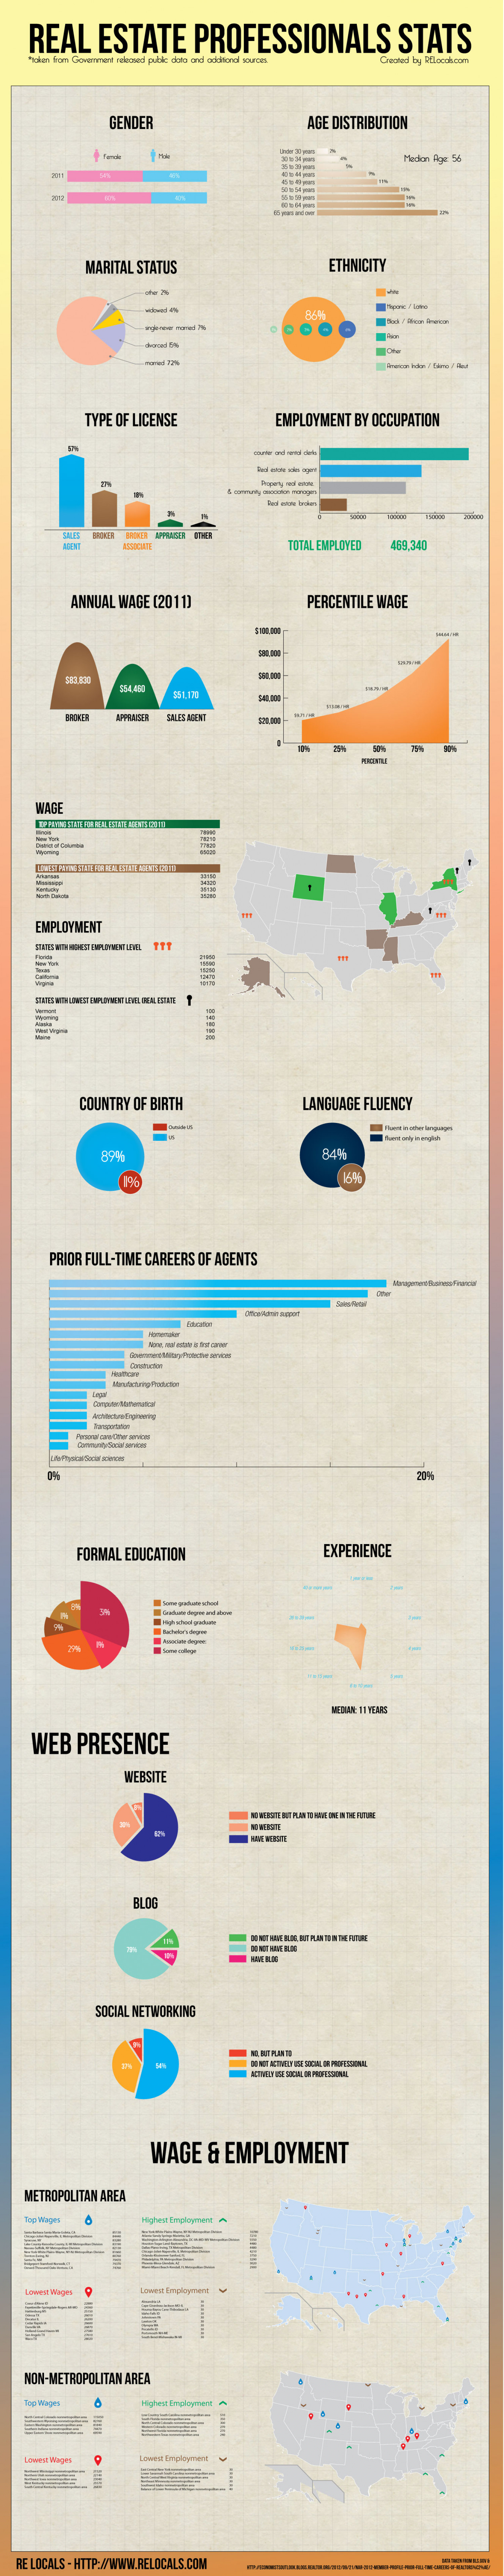 Real Estate Professionals Stats Infographic